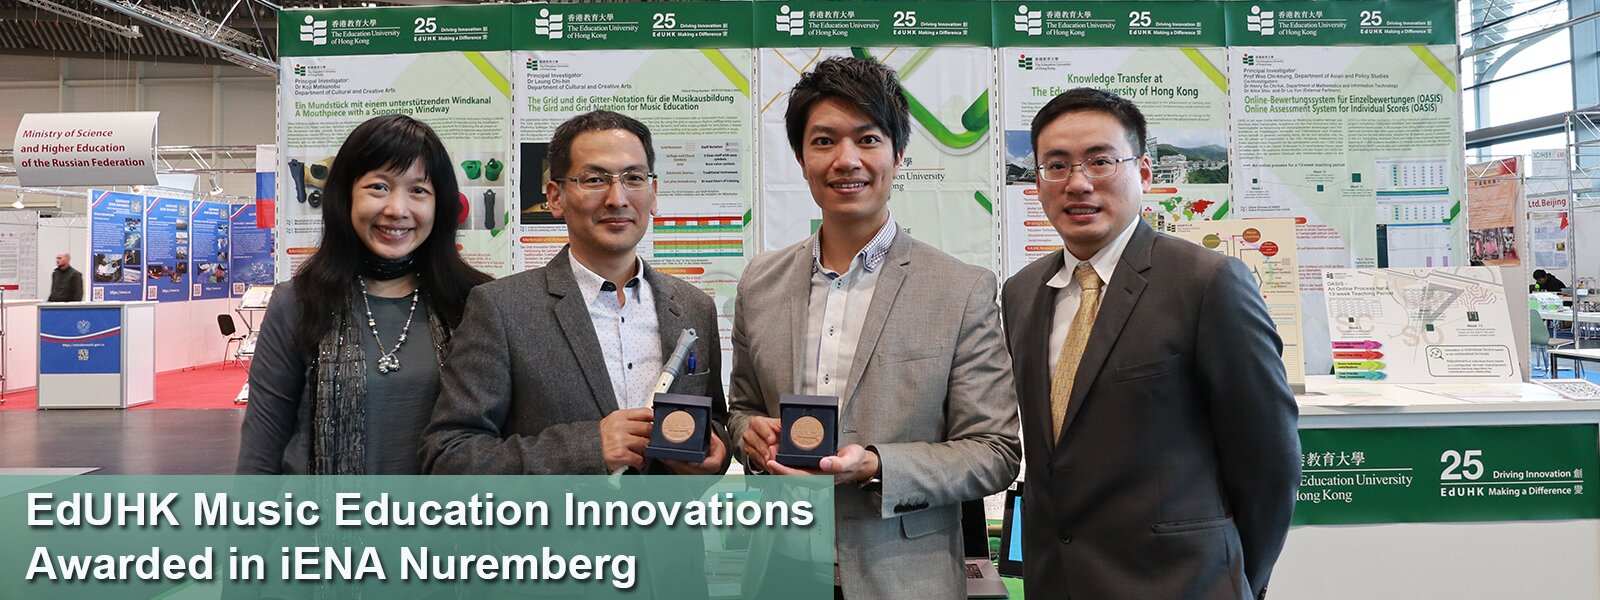 EdUHK Music Education Innovations Awarded in iENA Nuremburg